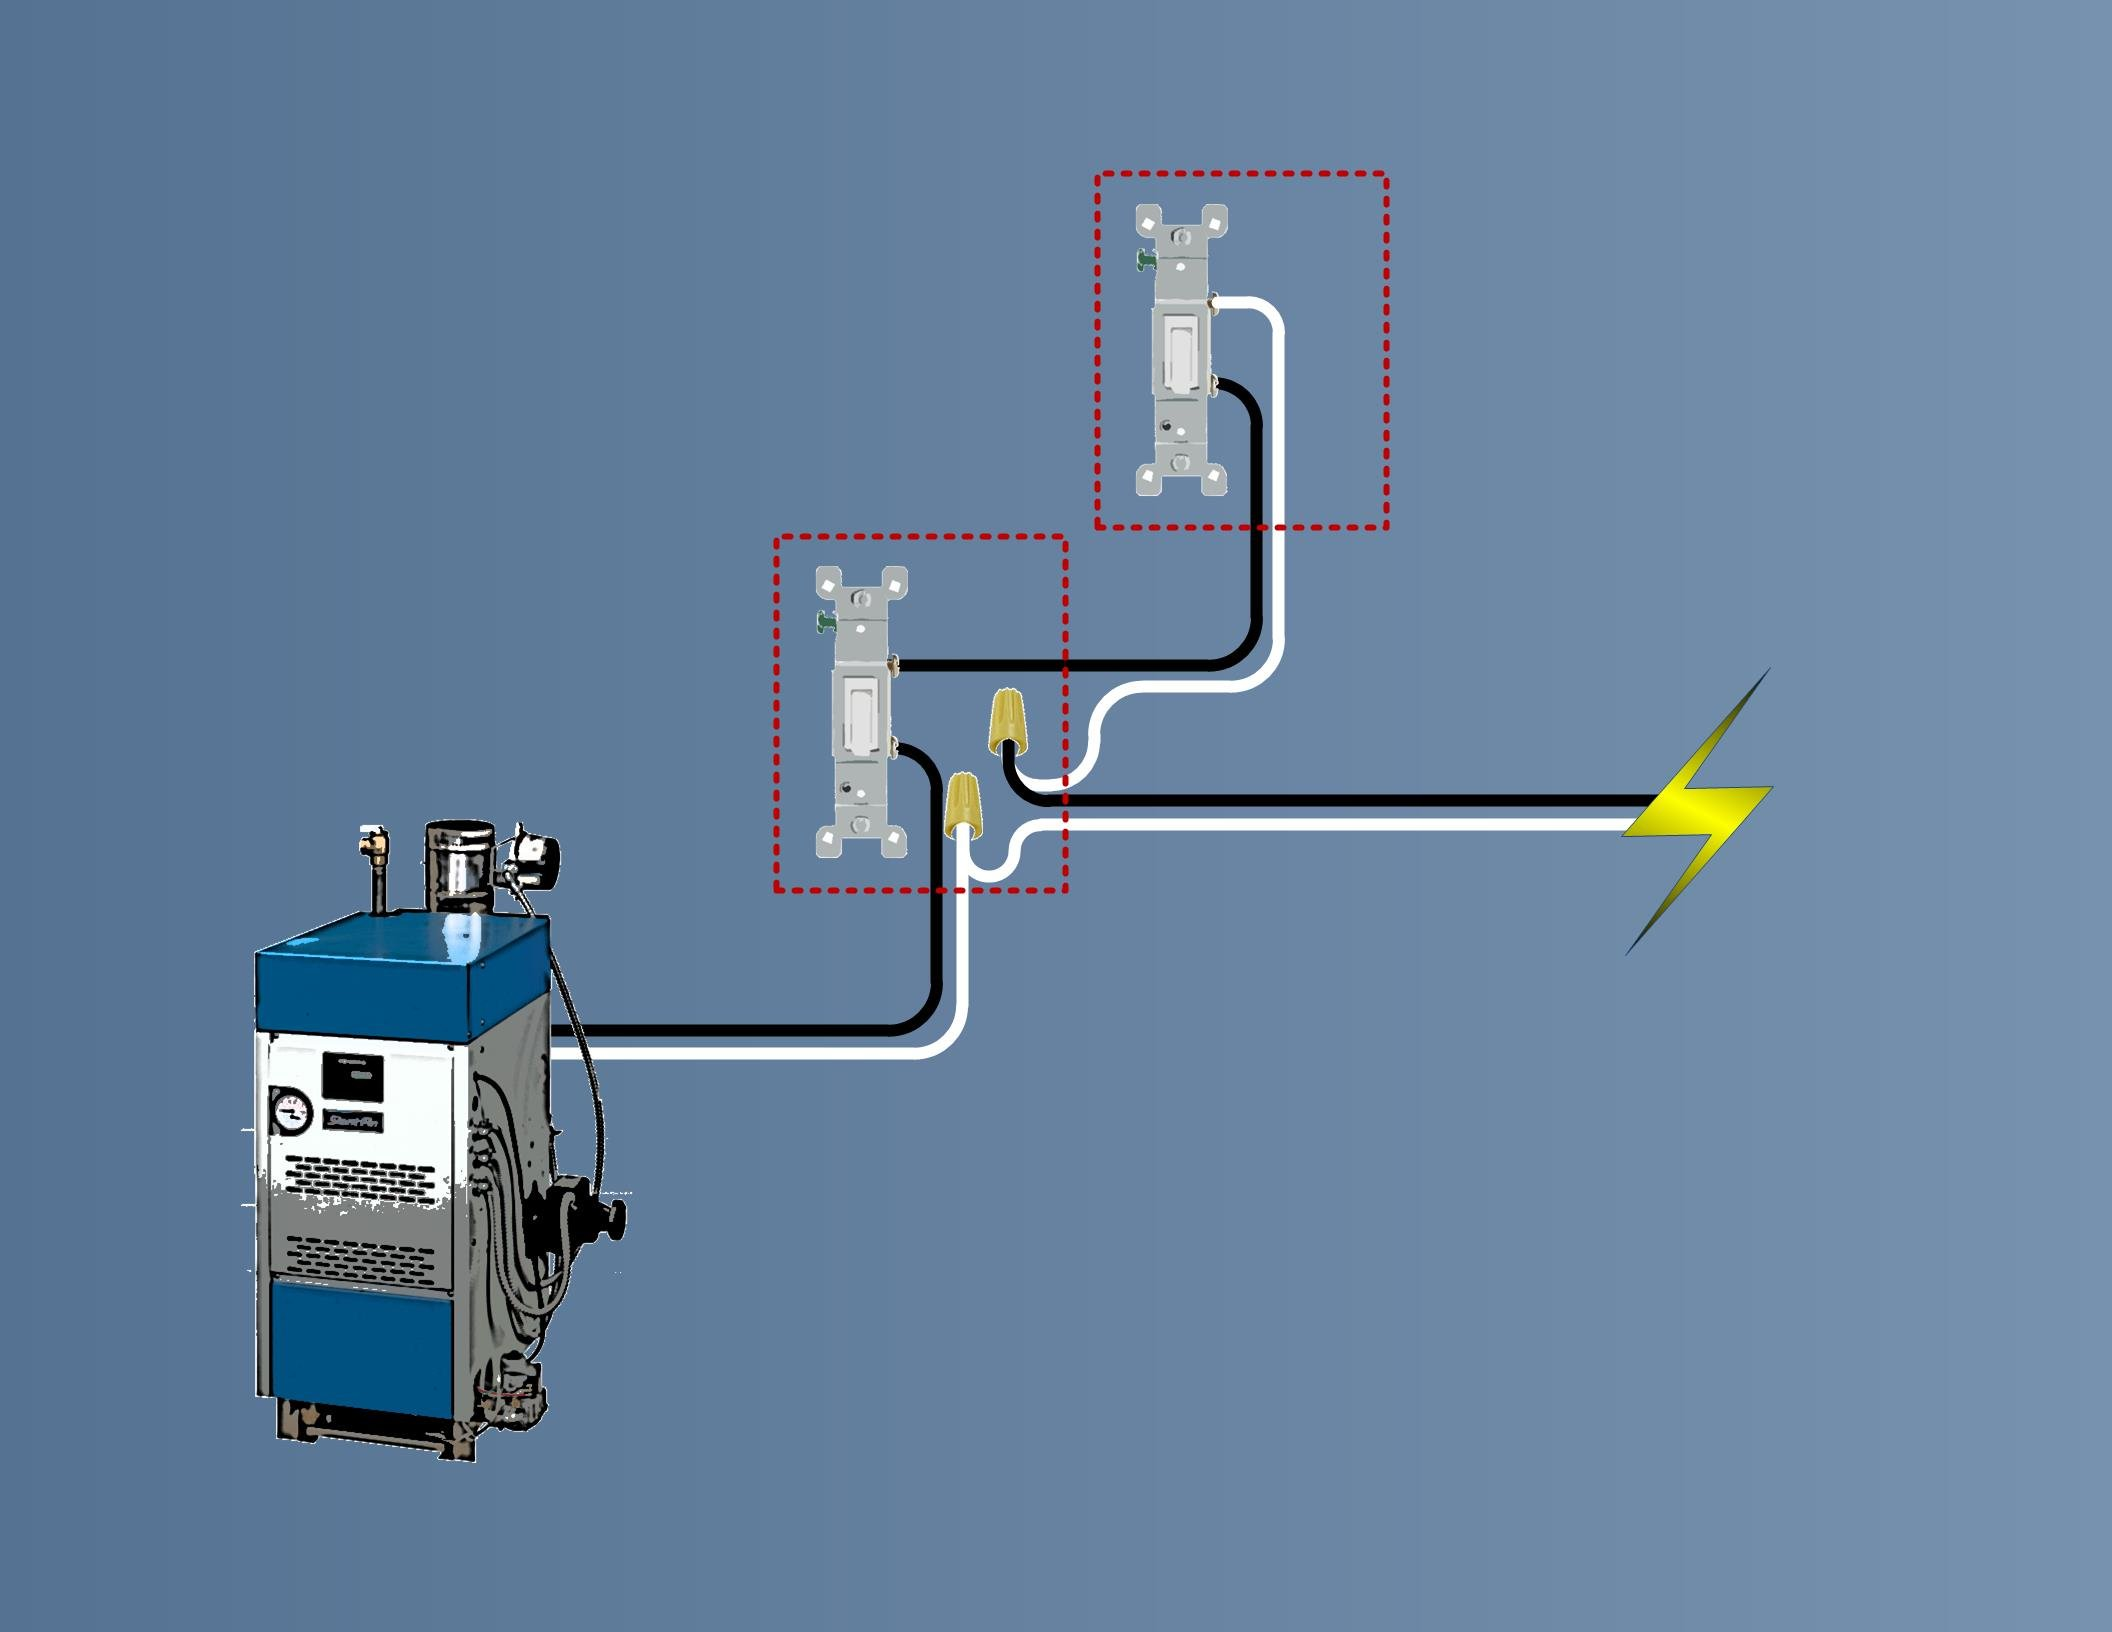 Switch Wiring Diagram Further Single Pole Double Throw Switch Diagram